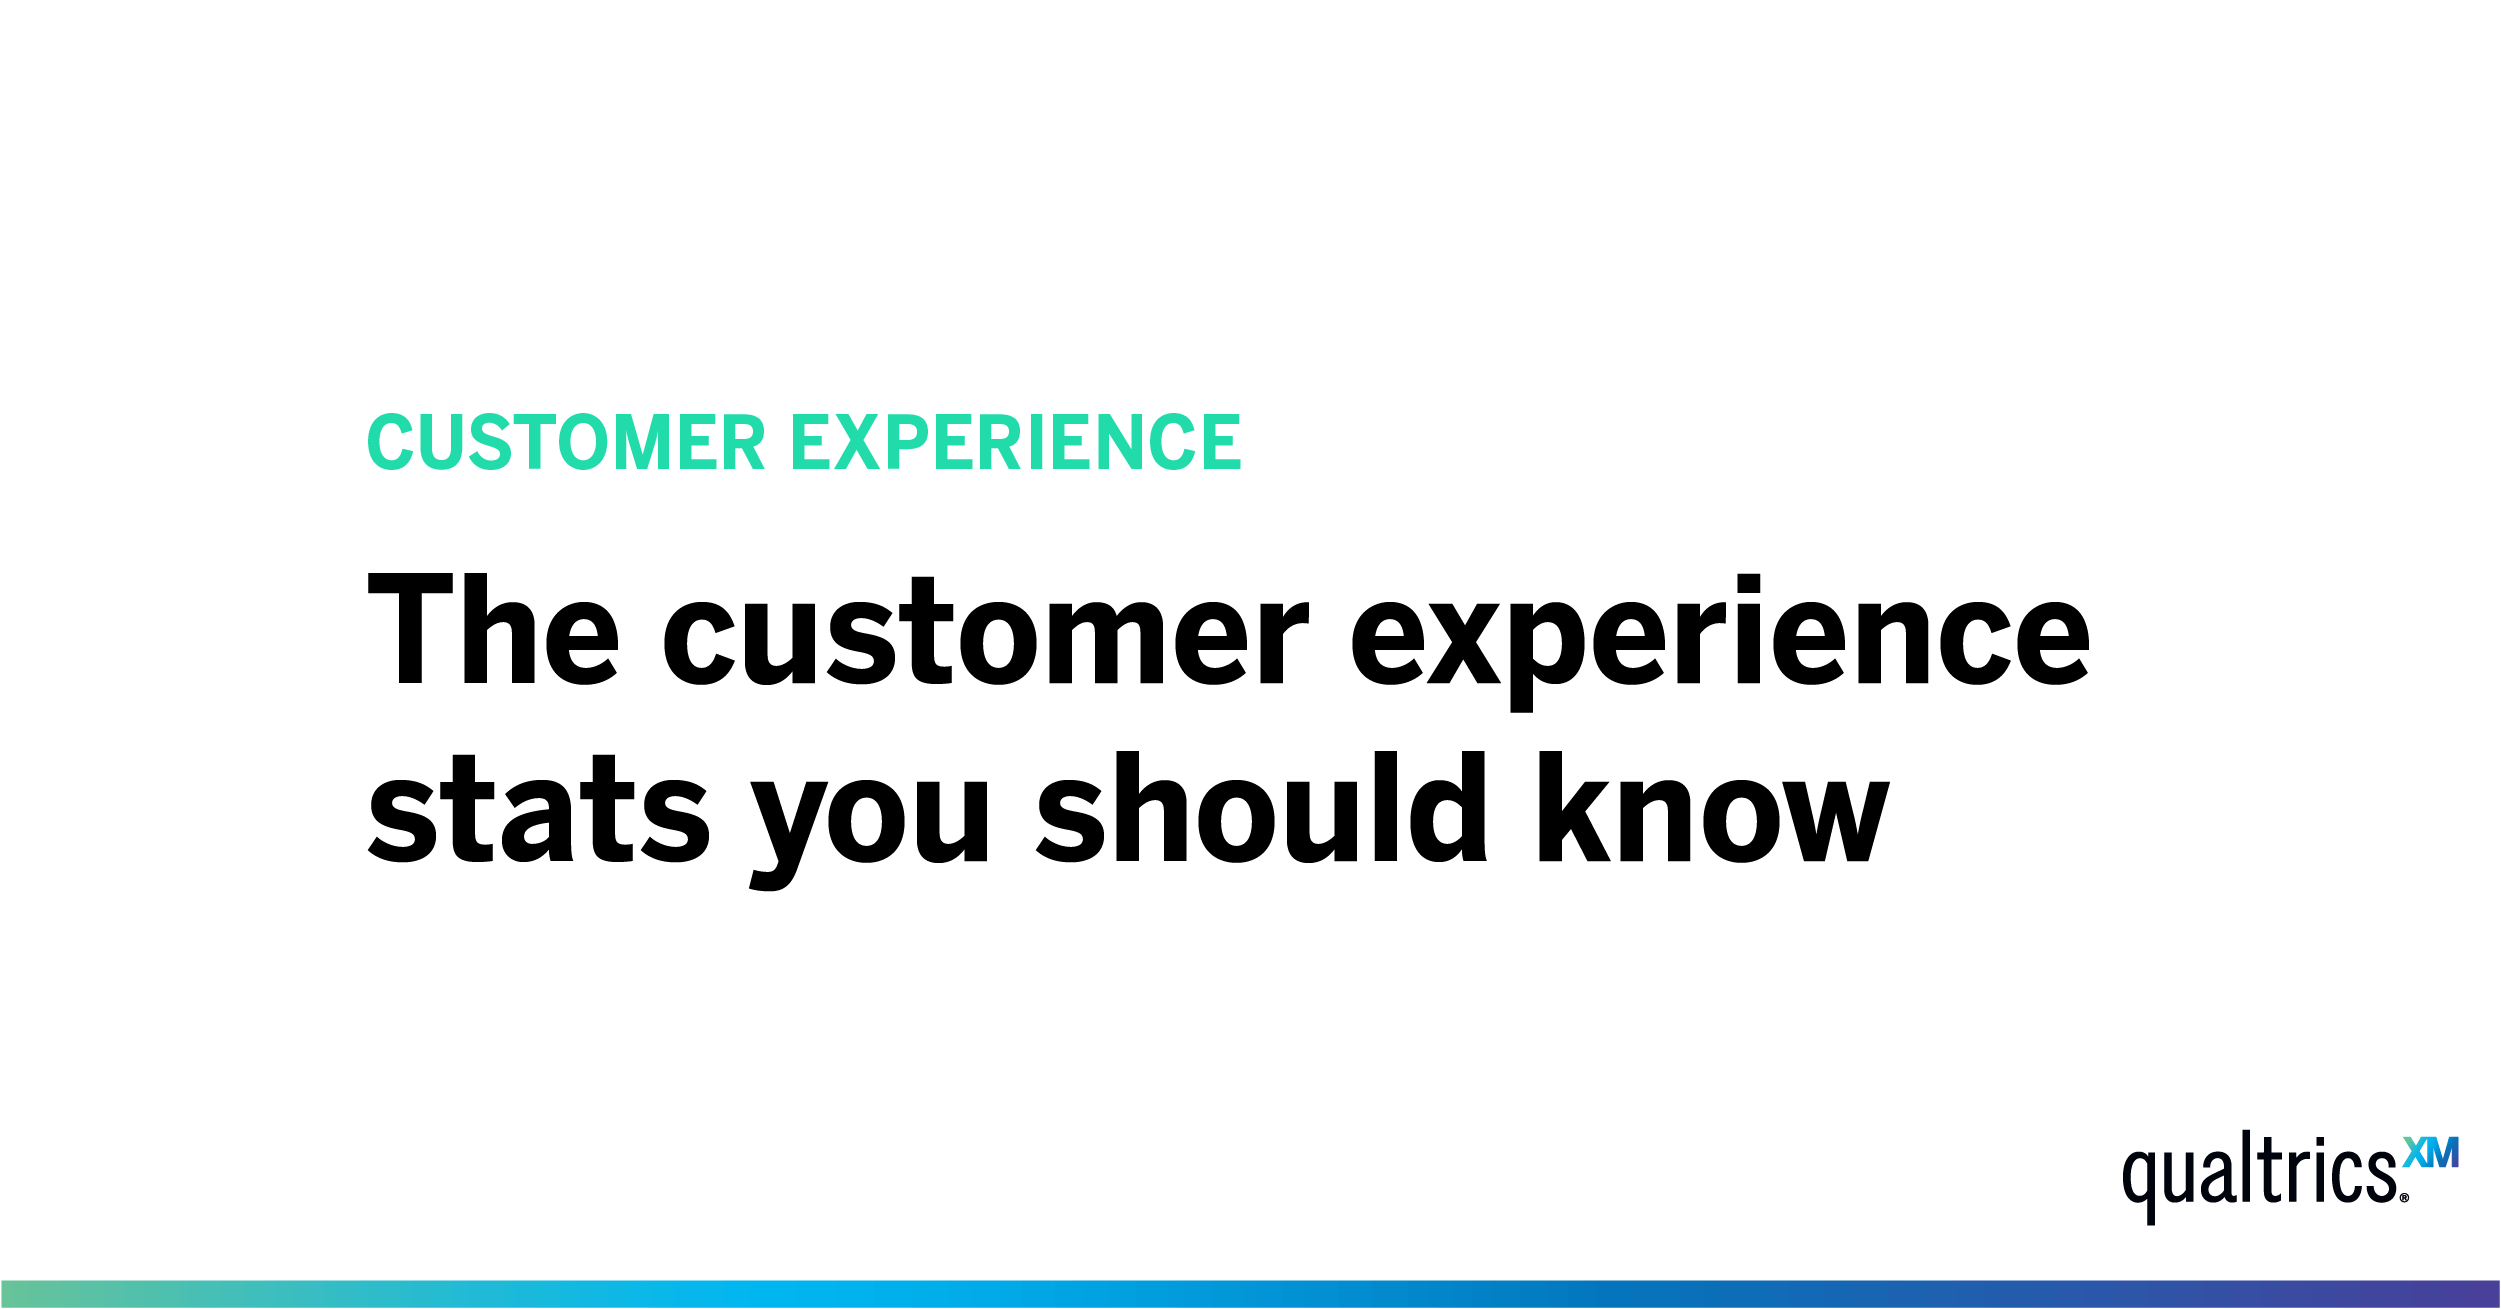 18 Customer Experience Stats to Know in 2019